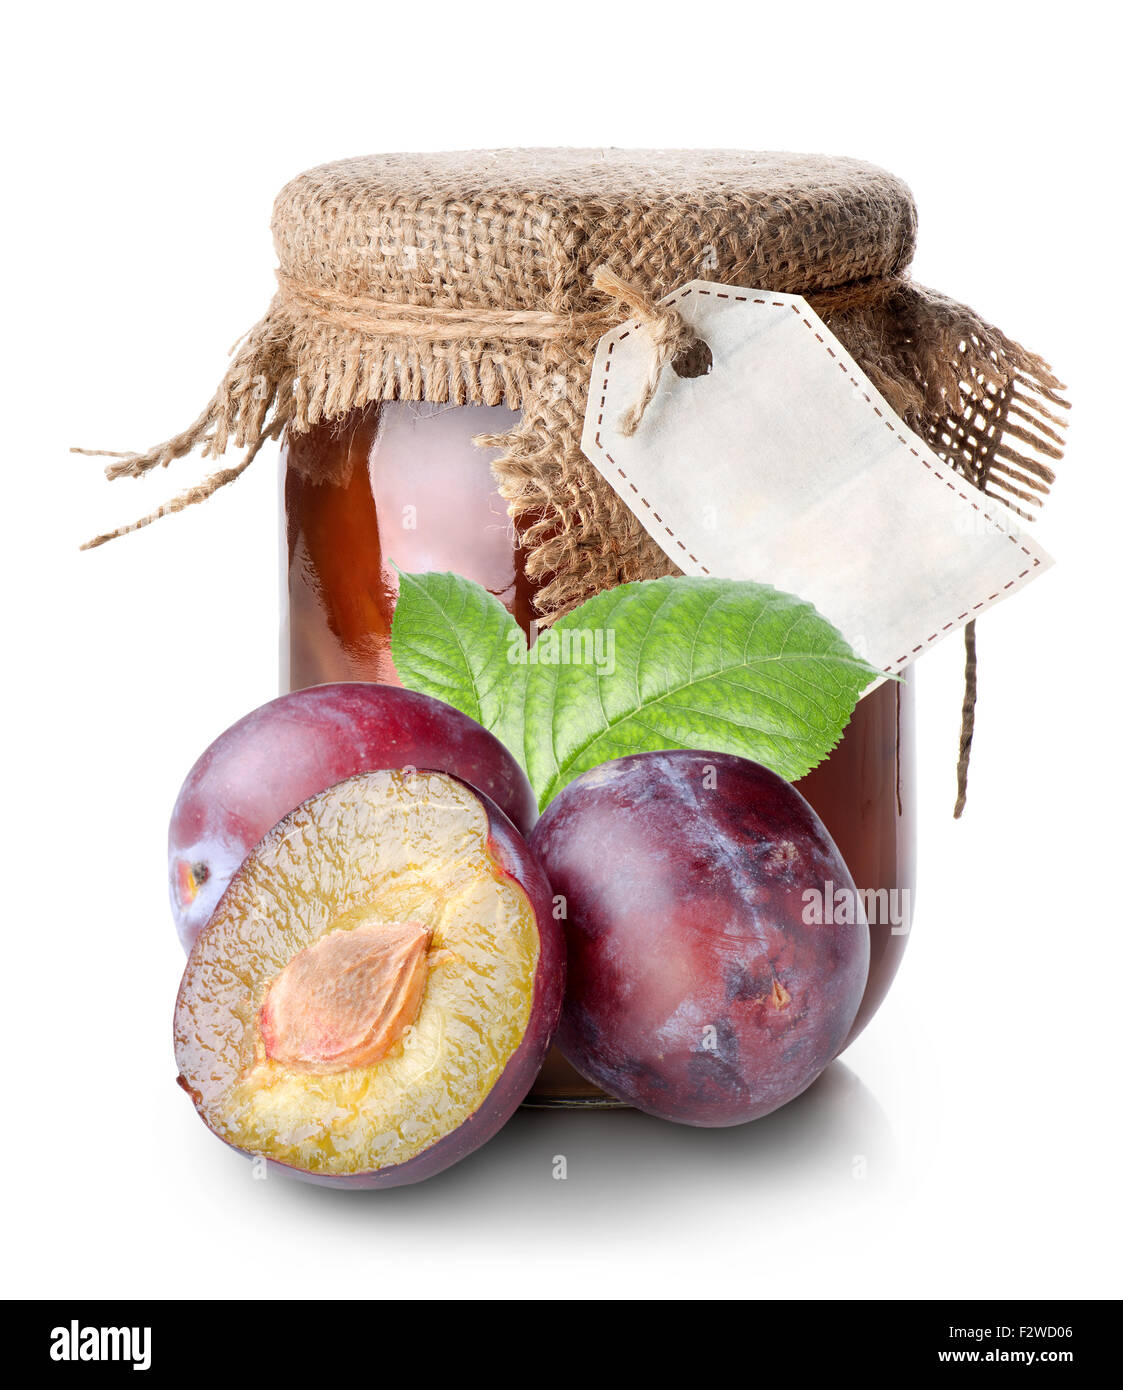 Plums and confiture in a jar isolated on white - Stock Image